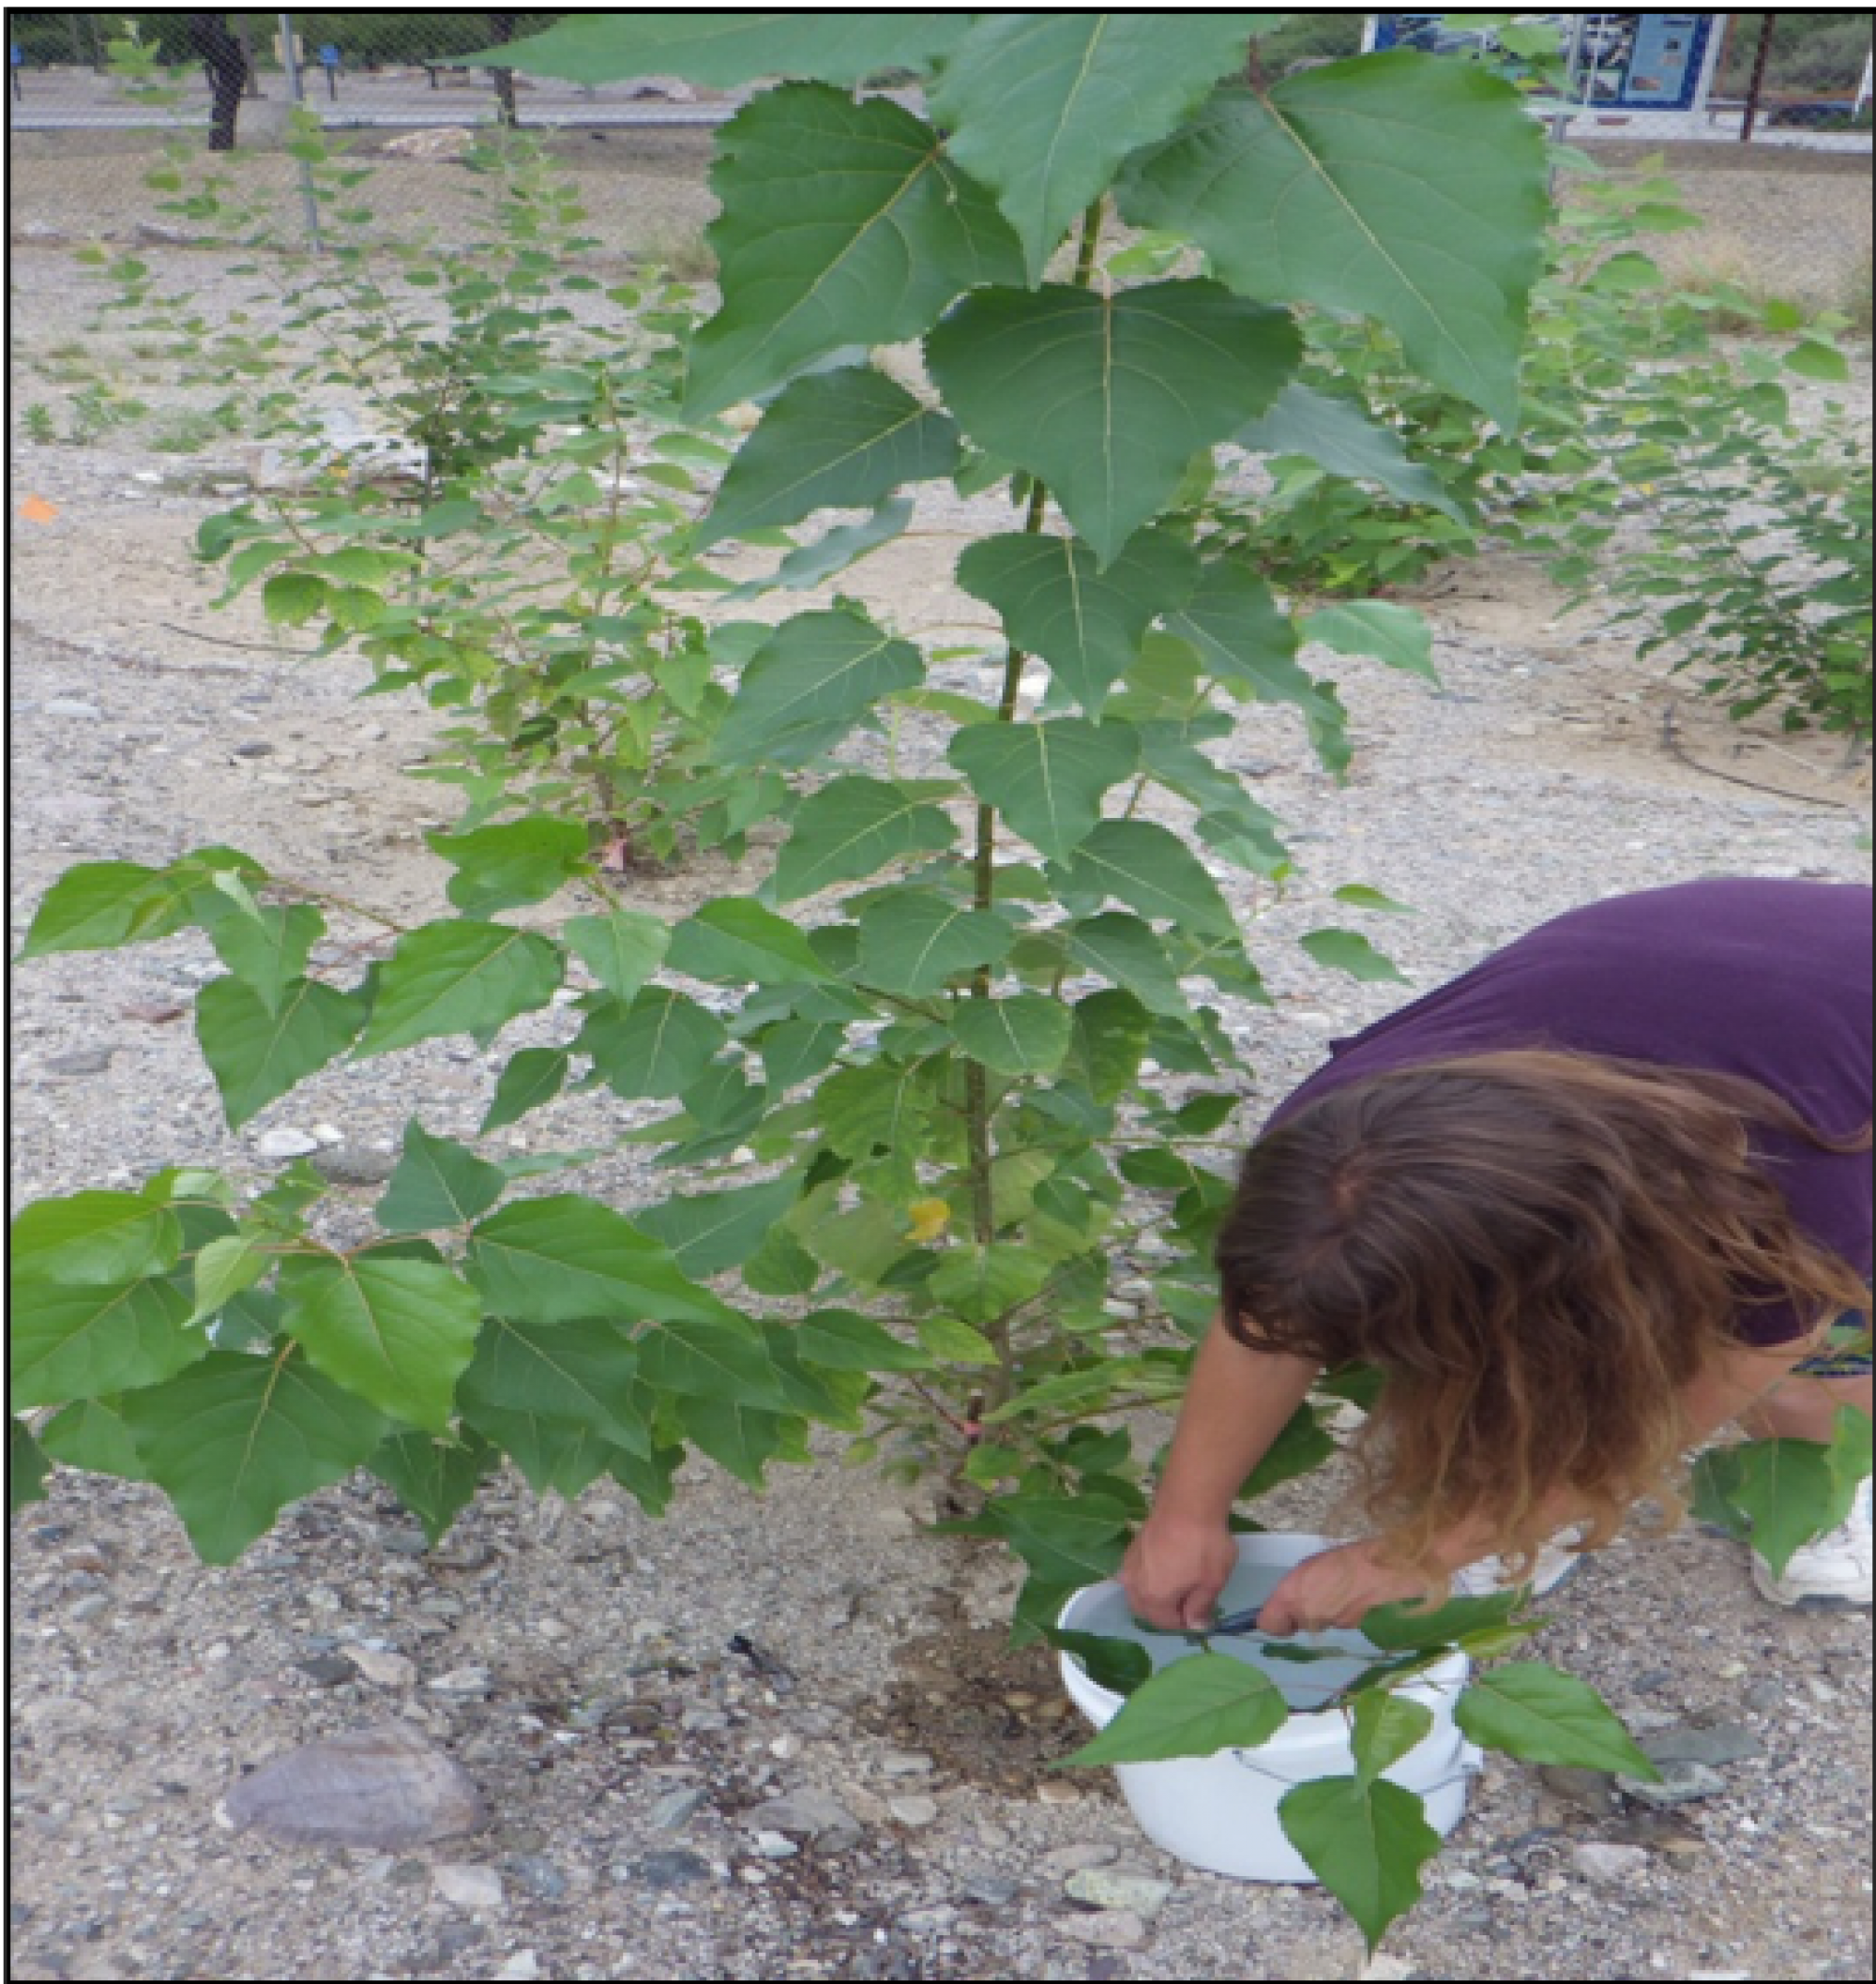 Amberly Neice was a student in the National Science Foundation-funded Research Experiences for Undergraduates program when she assisted with the poplar tree study in 2014.